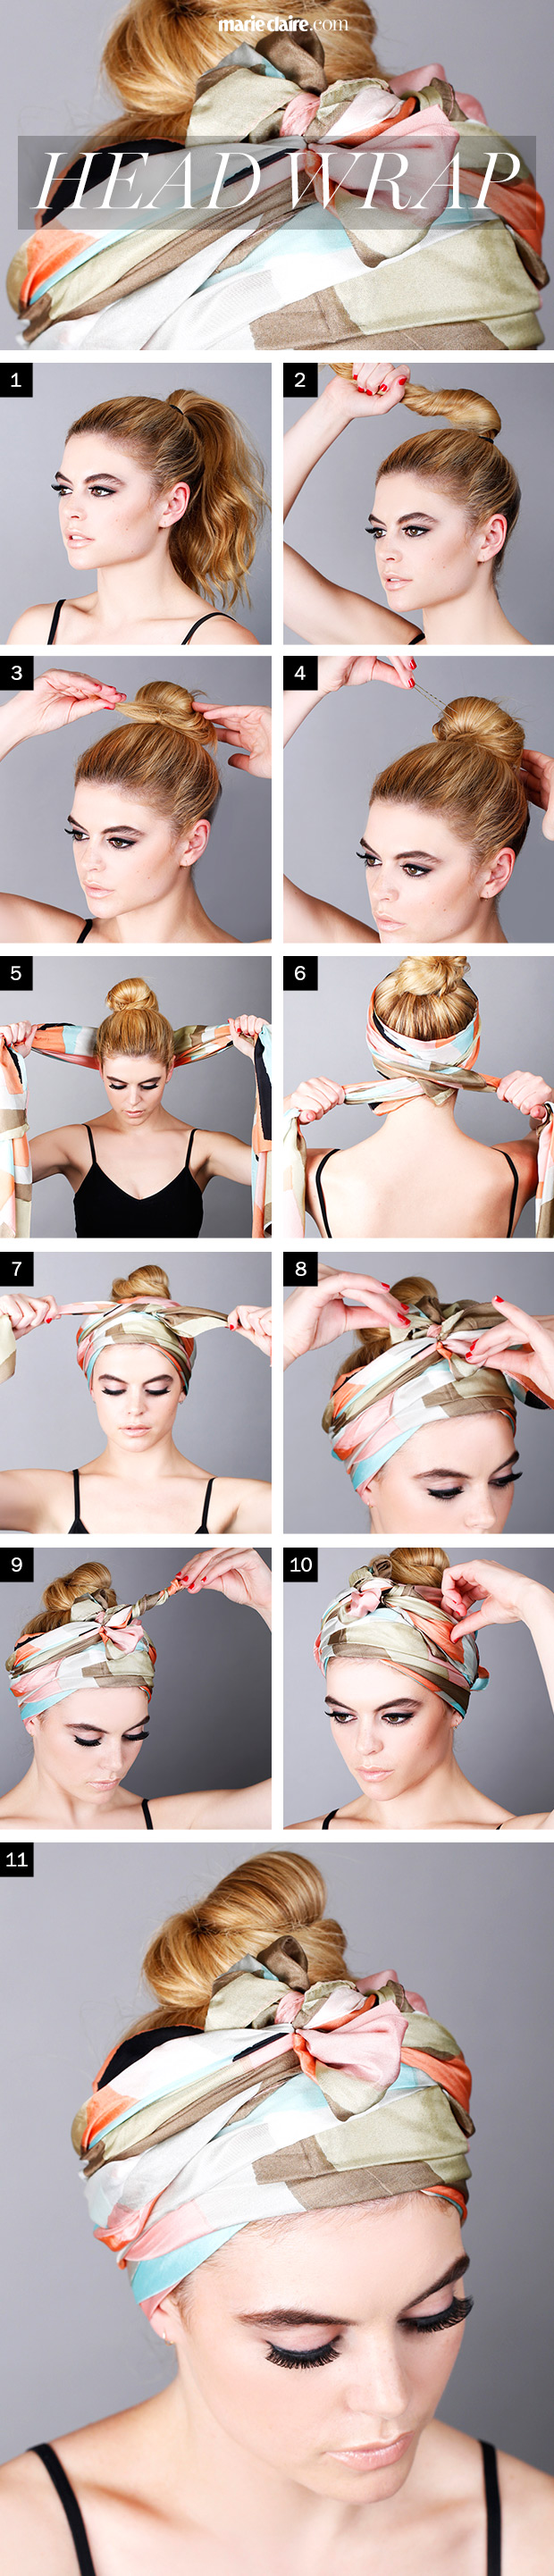 5483322c0b2d6_-_mcx-head-wrap-scarf-how-to.jpg